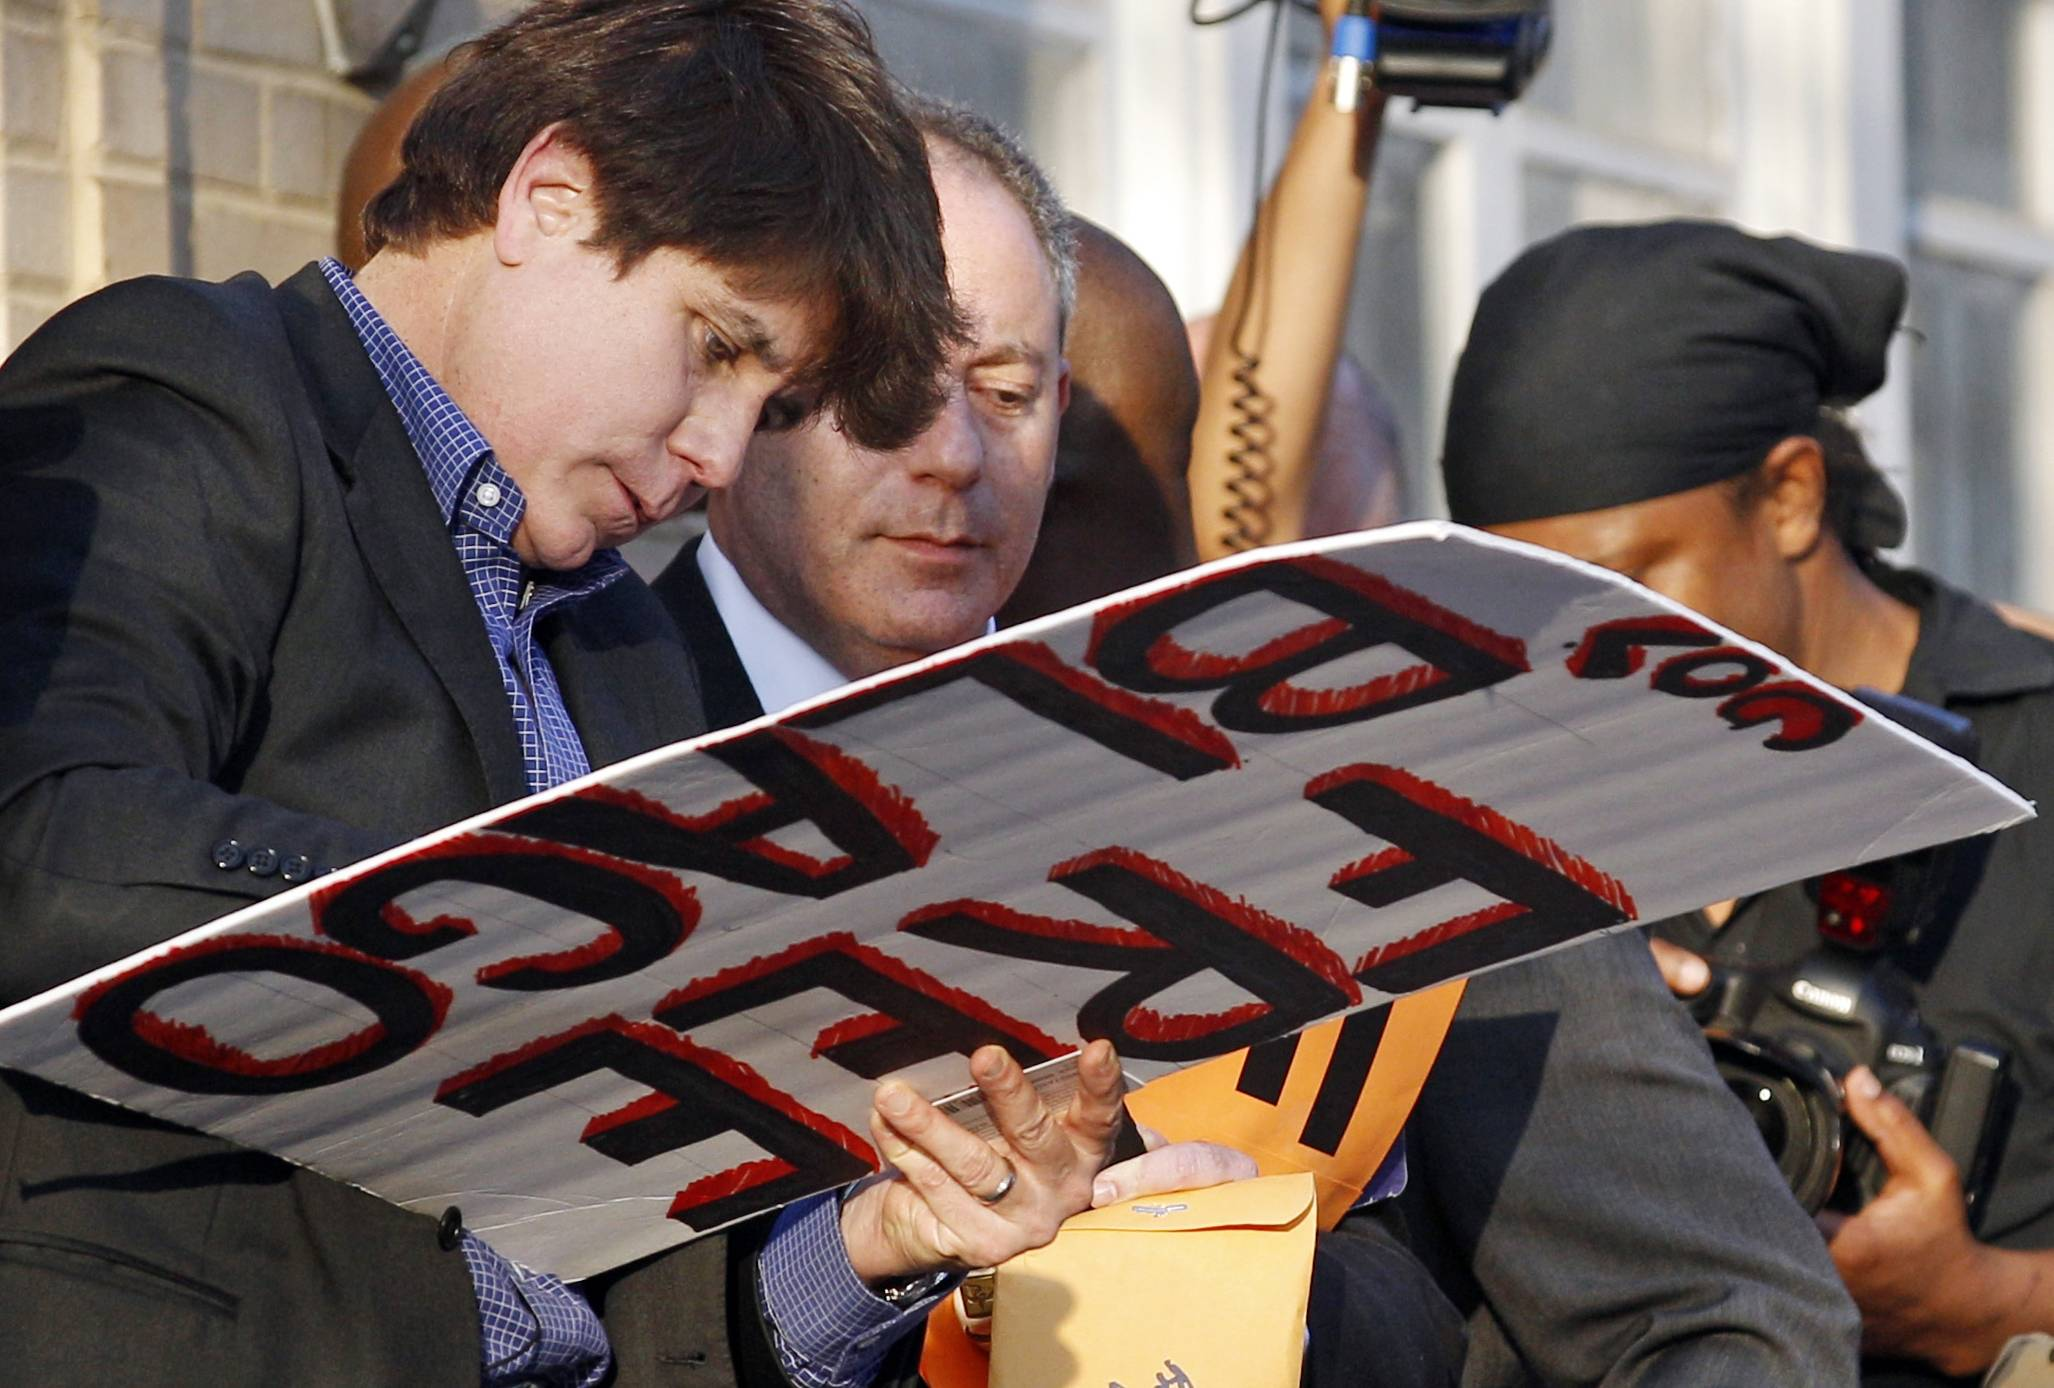 Former Illinois Gov. Rod Blagojevich autographs a 'Free Gov. Blago' sign at his home in Chicago the day before he would report to prison in 2012.